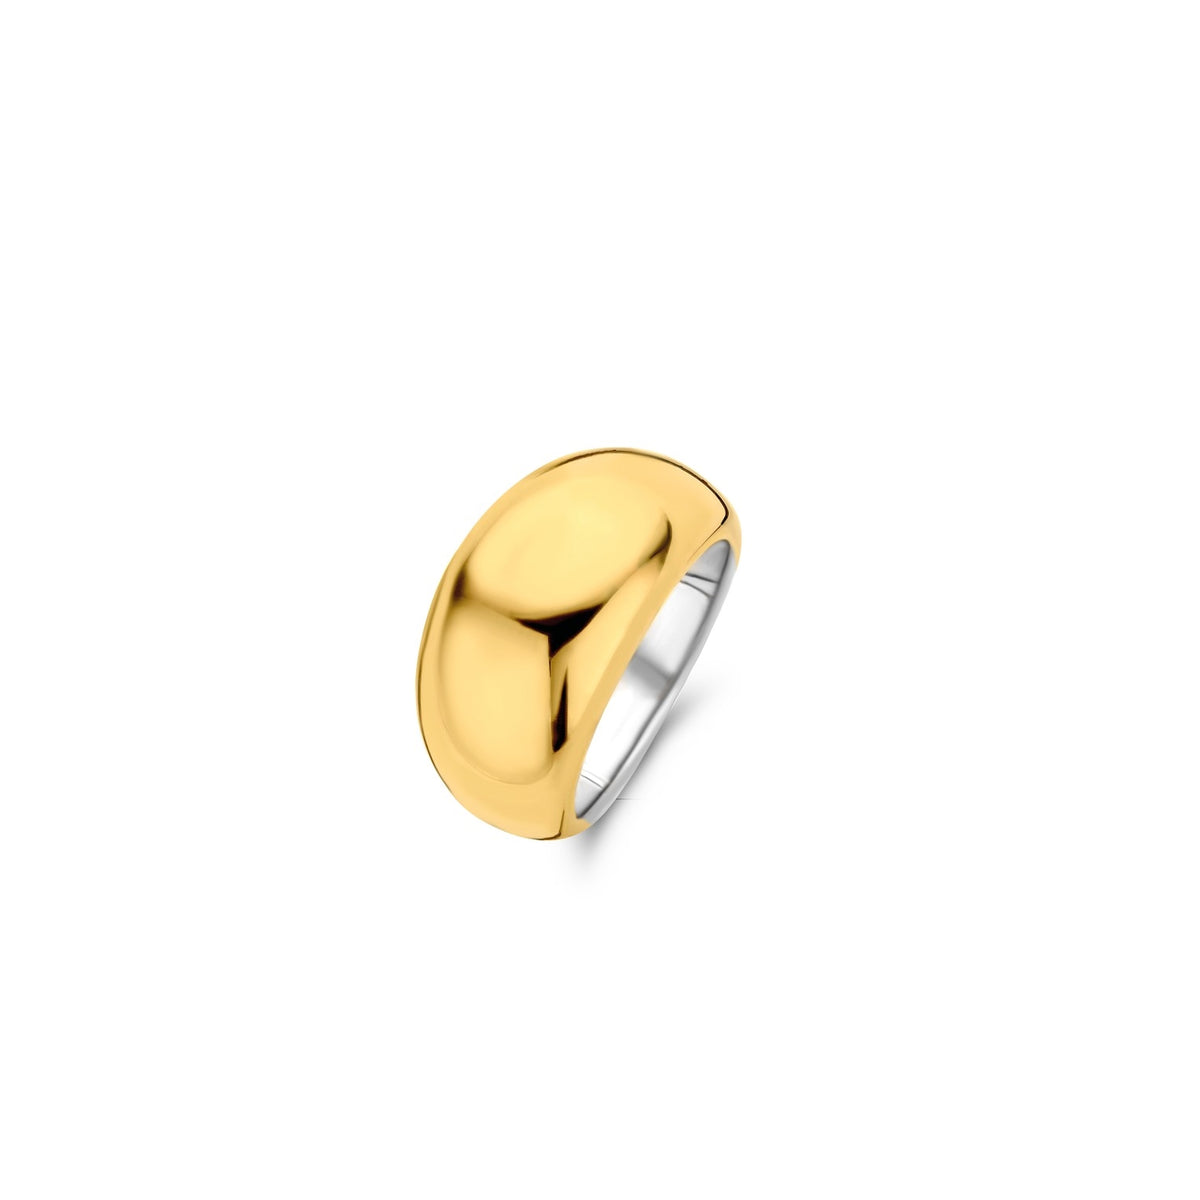 TI SENTO Sterling Silver Gold Tone Dome Ring